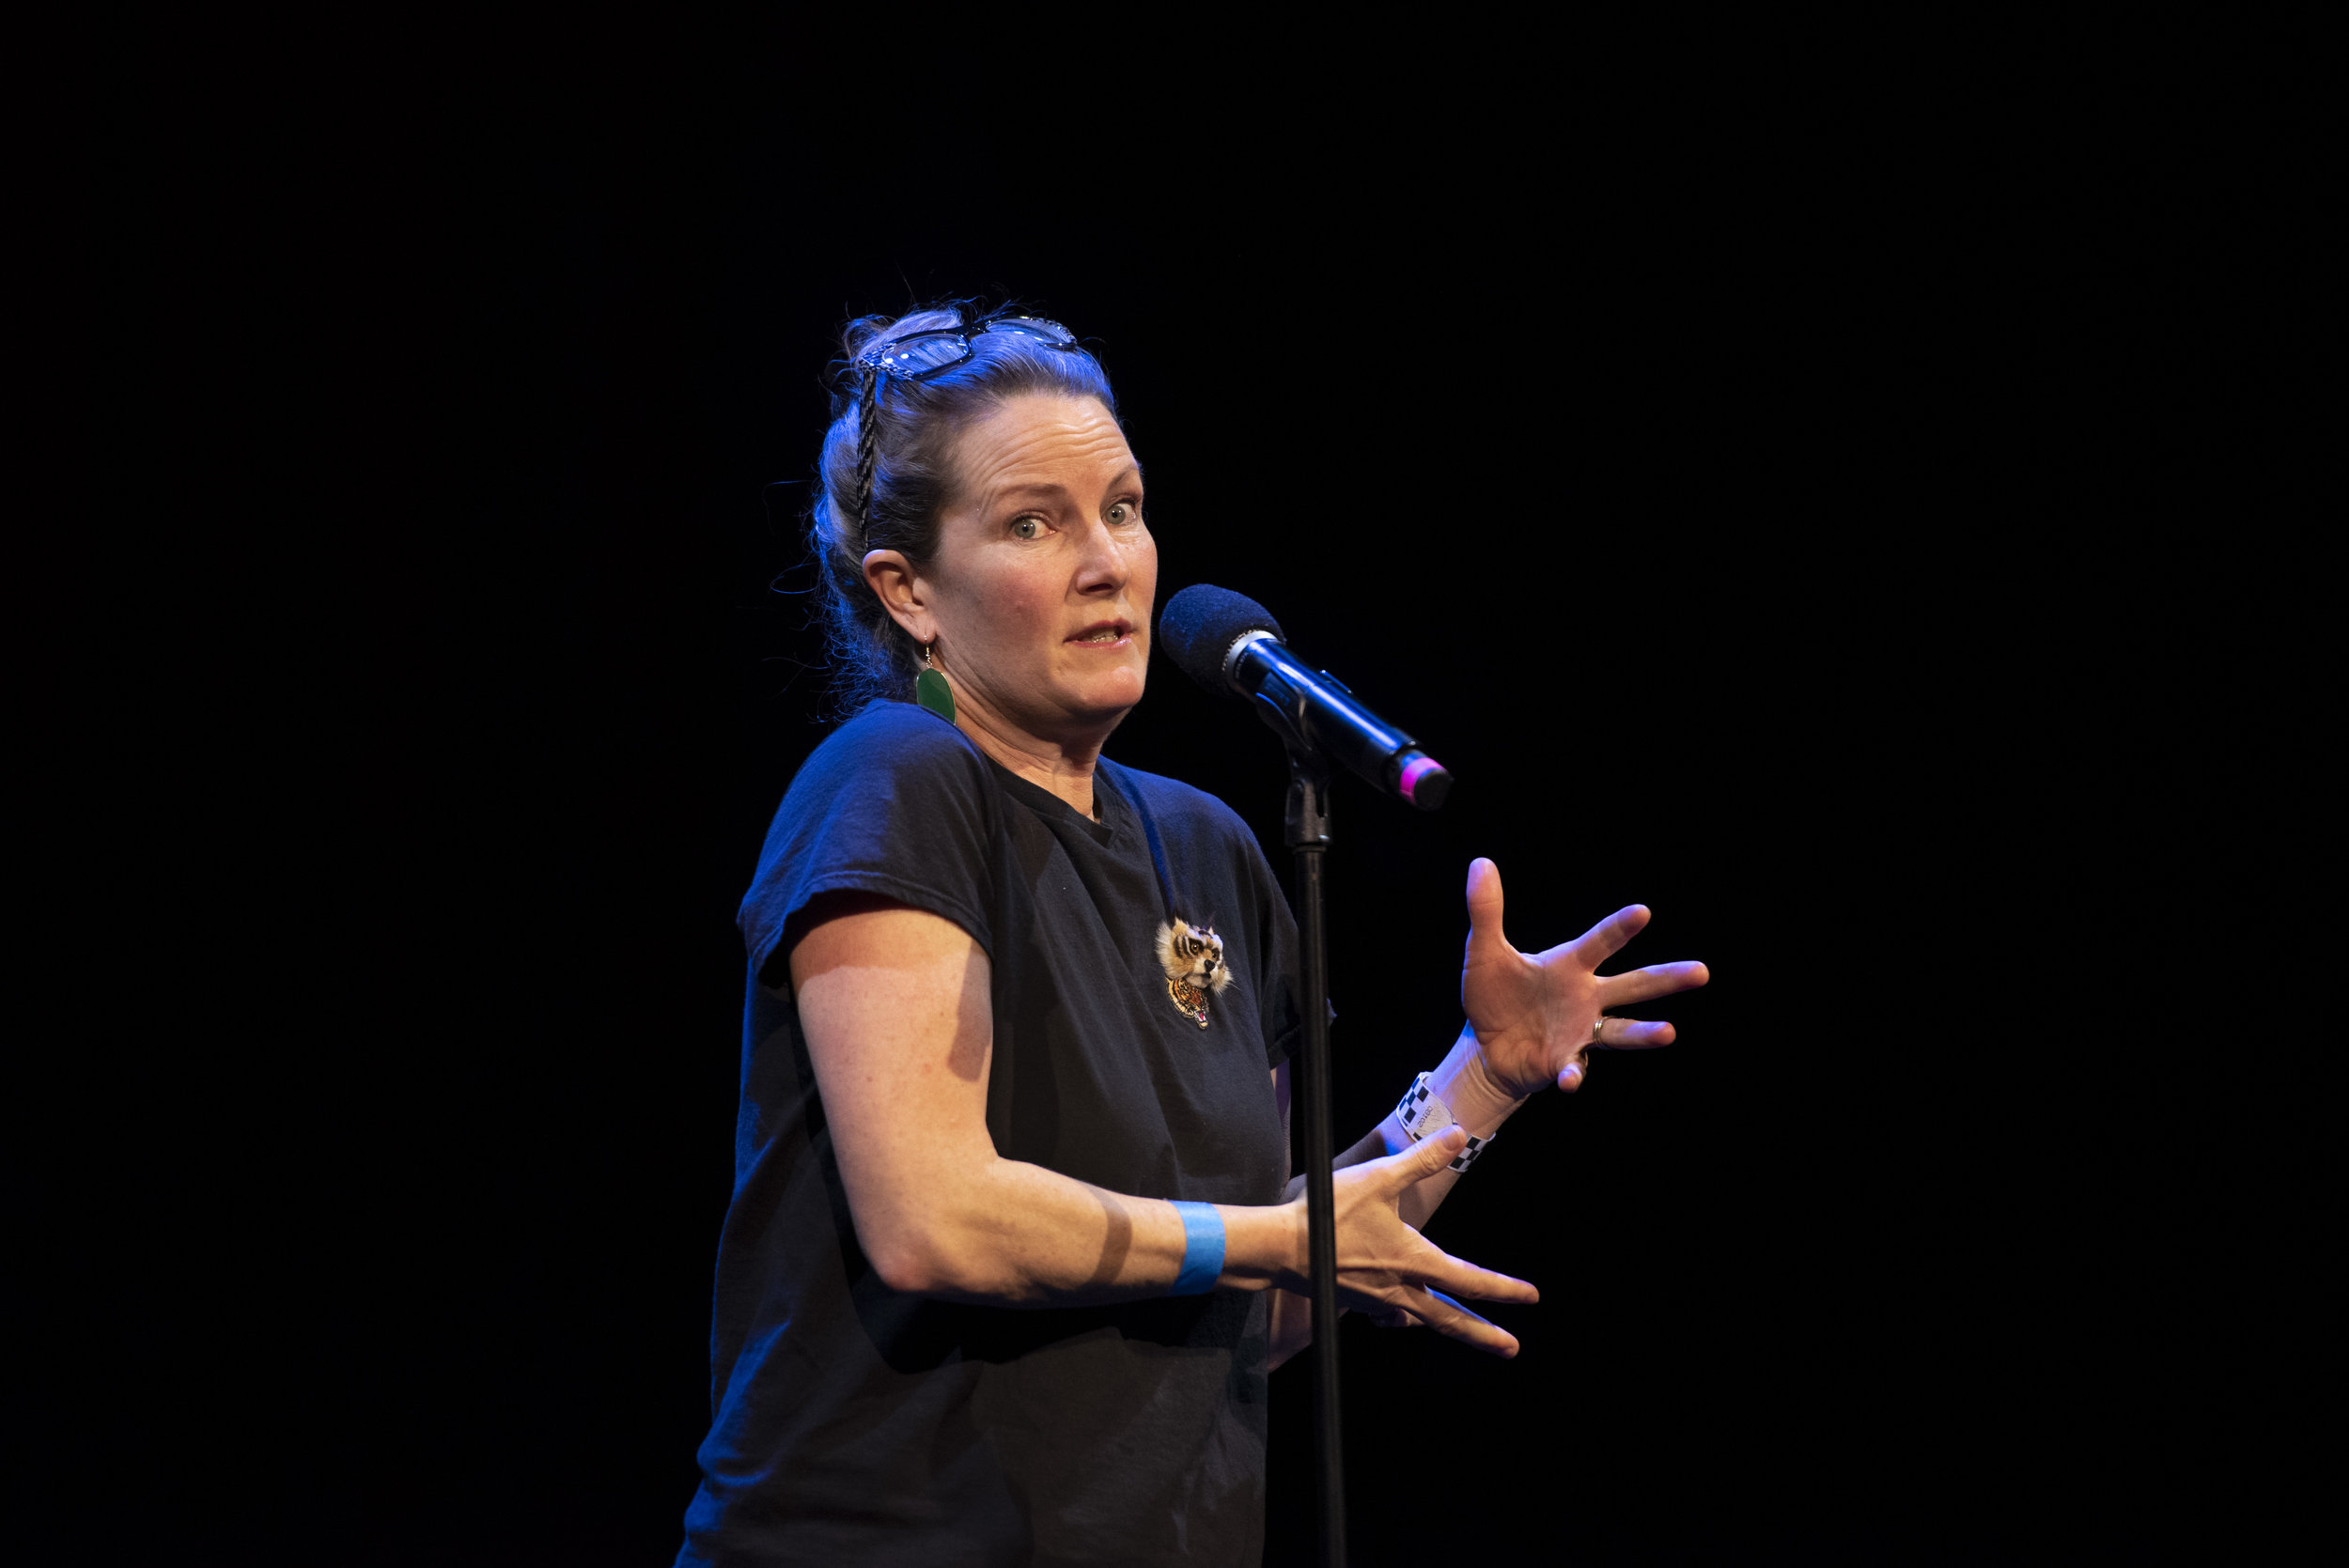 Sara Sweet shares her story on the Story Collider stage at Oberon Theater in Boston, MA in April 2019. Photo by Kate Flock.